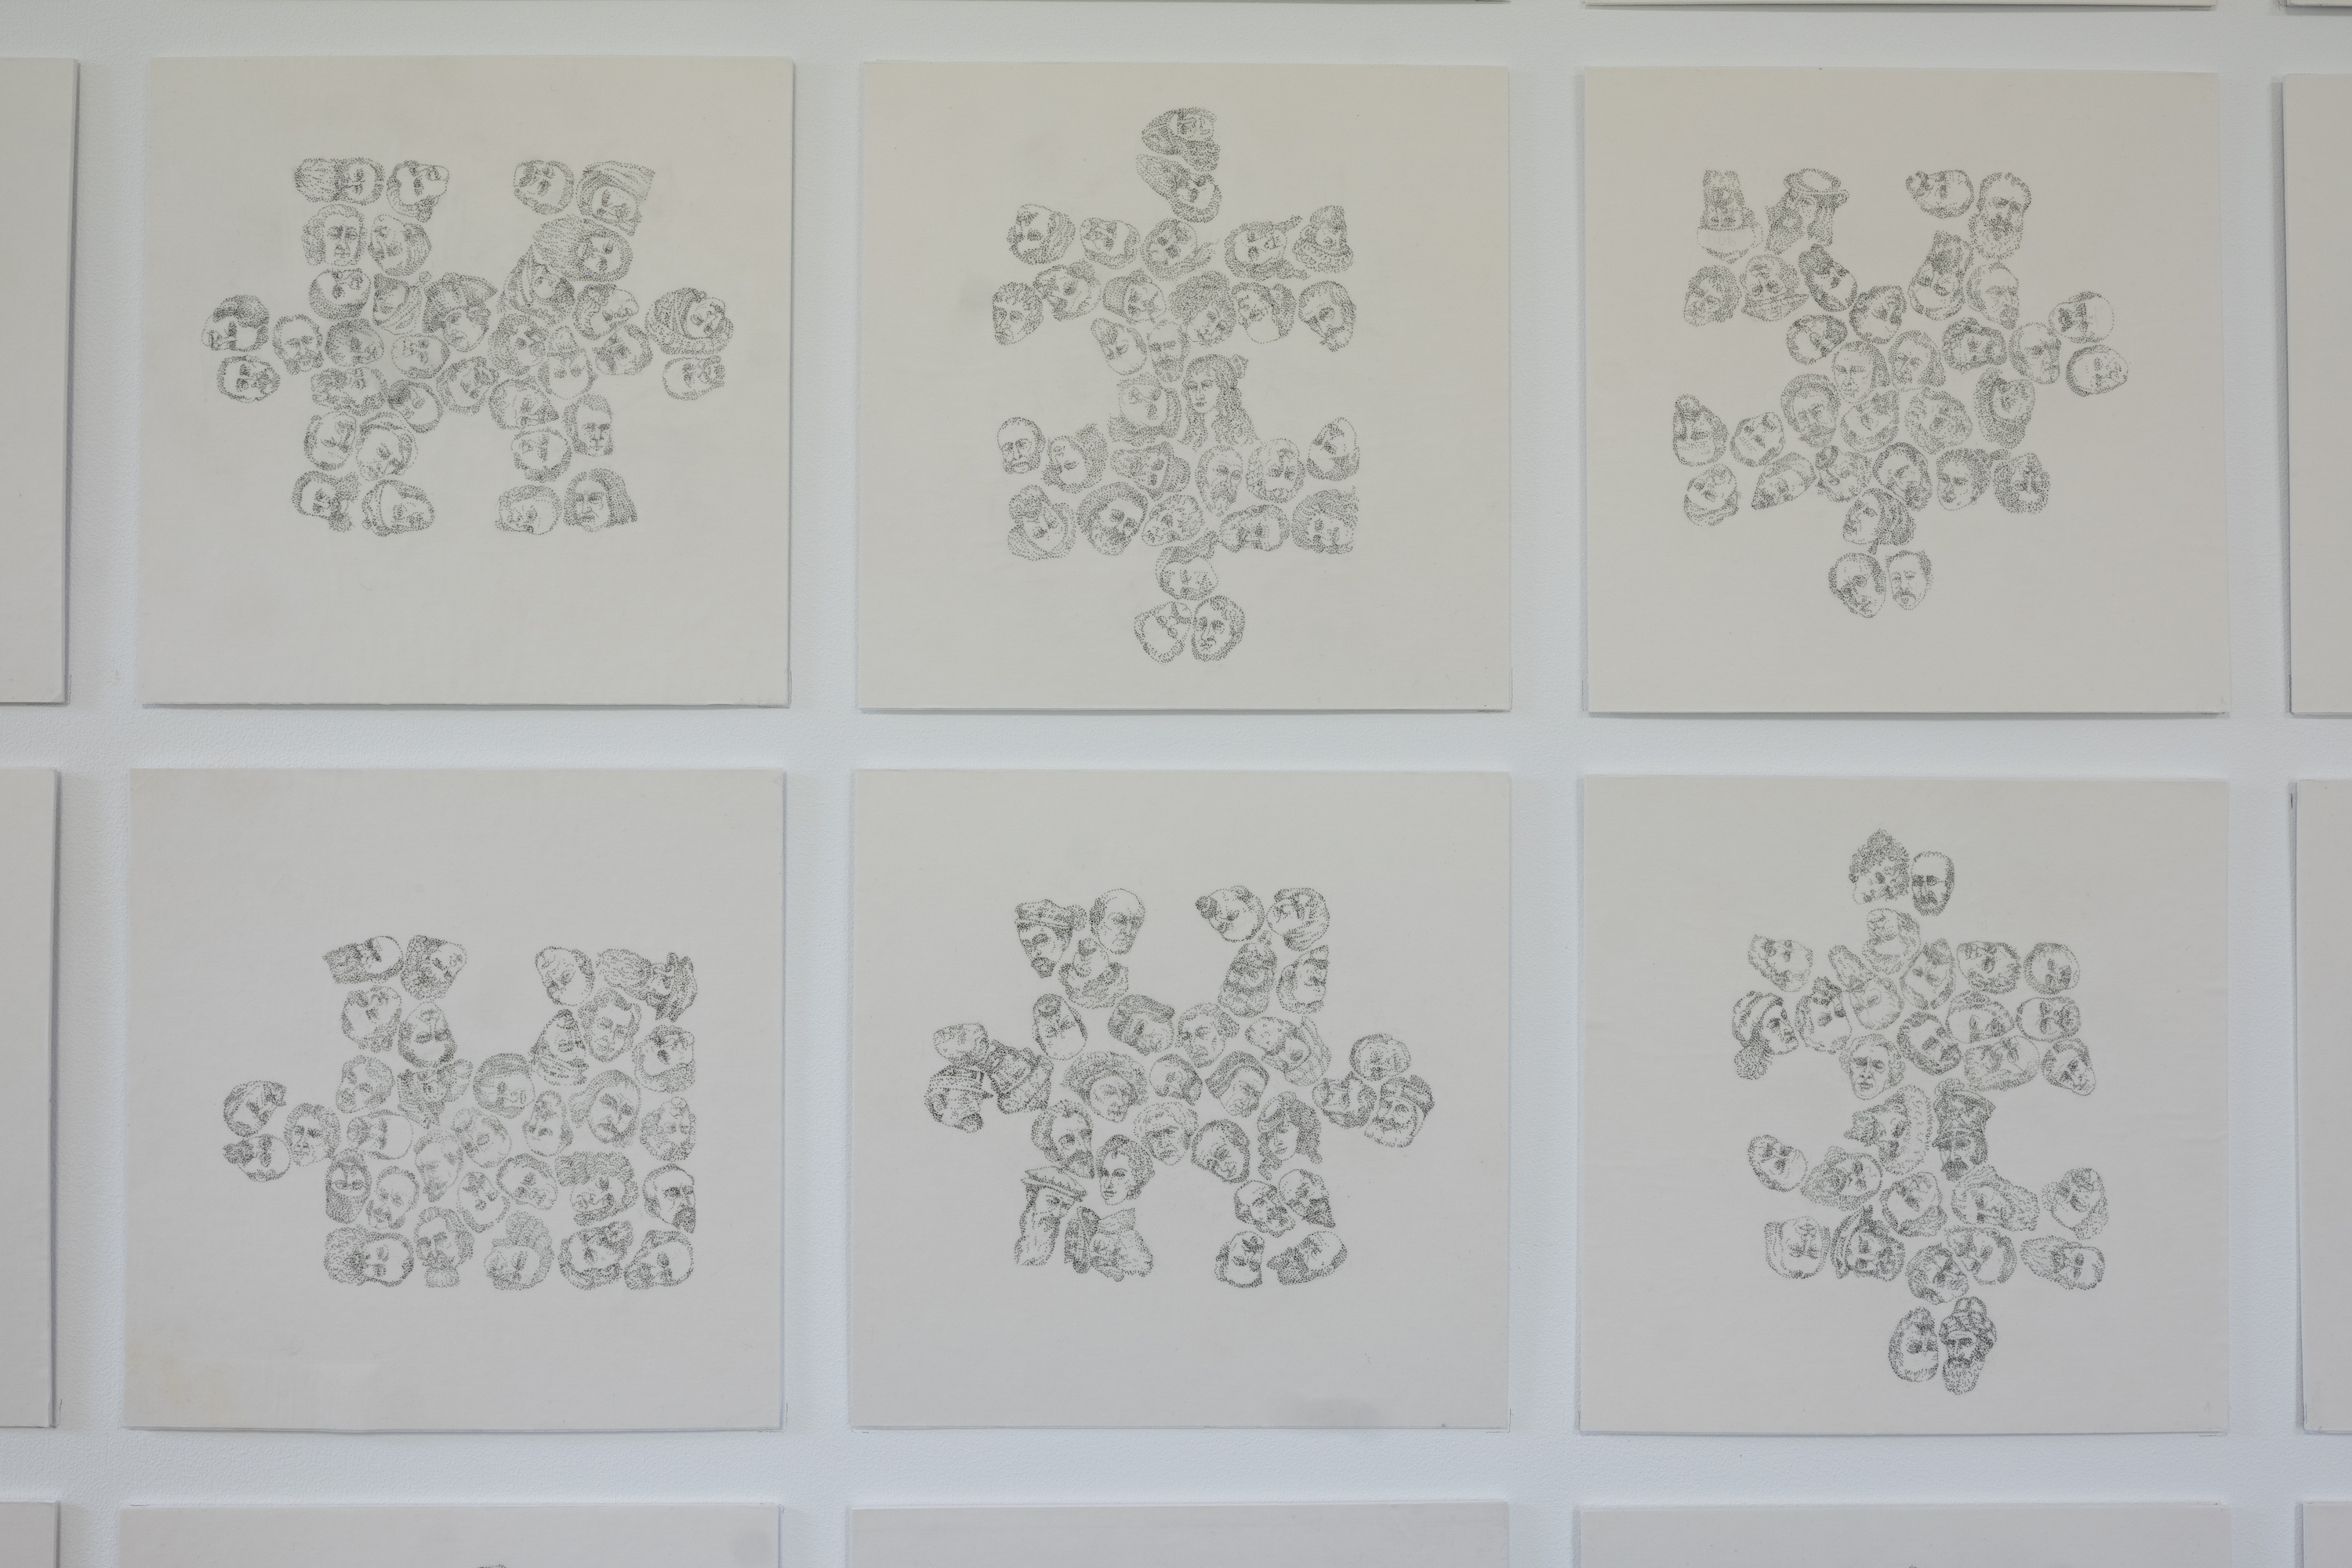 Detail Puzzled 24 individual 23 x 23 cm drawings 0.05 pigment liner dots on translucent paper.